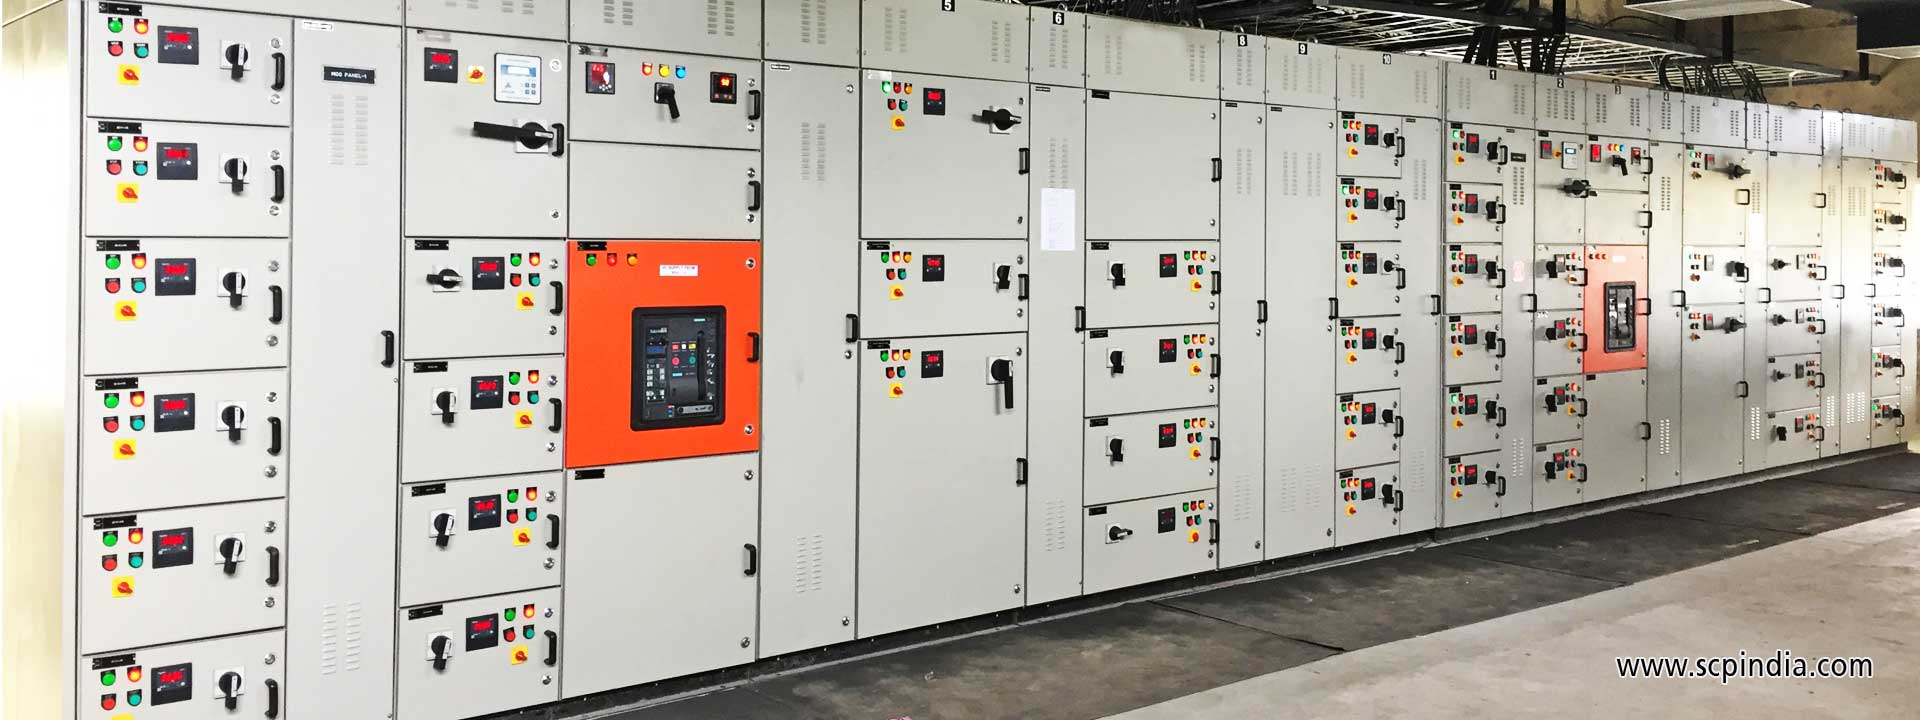 electrical control panel in india punjab jammu himachal pradesh